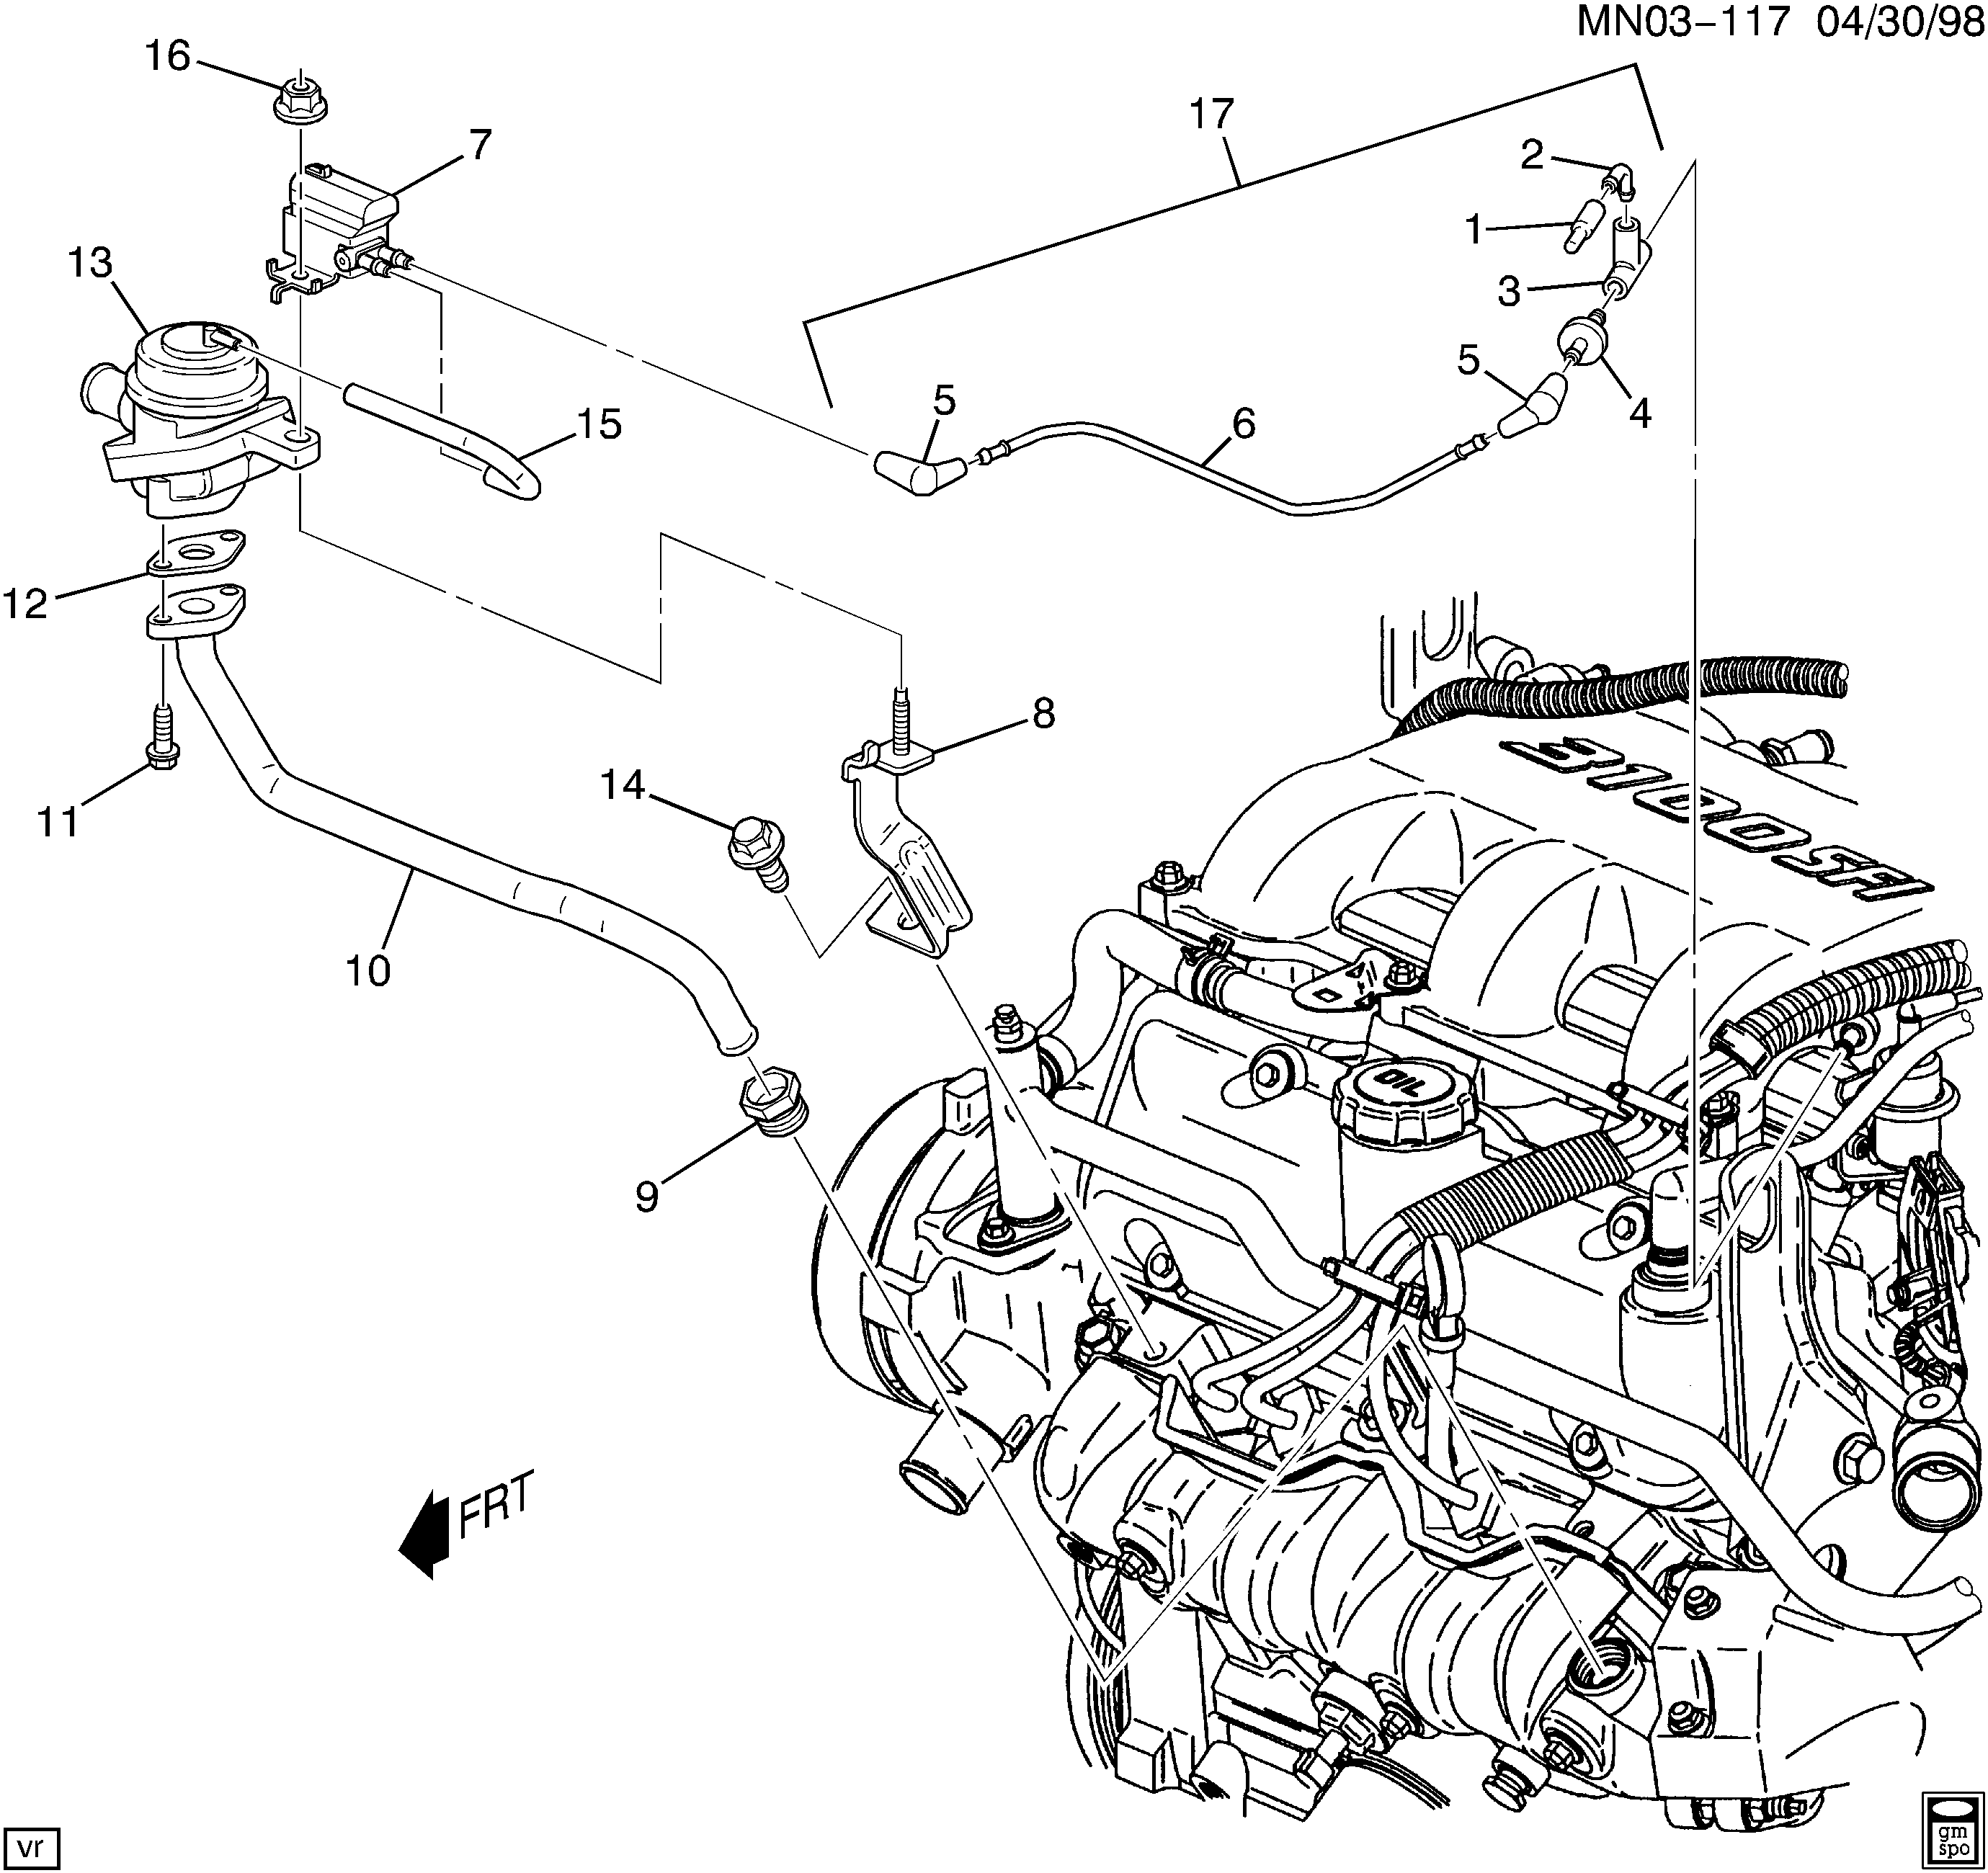 2000 Chevy S10 Secondary Air Injection System Diagram